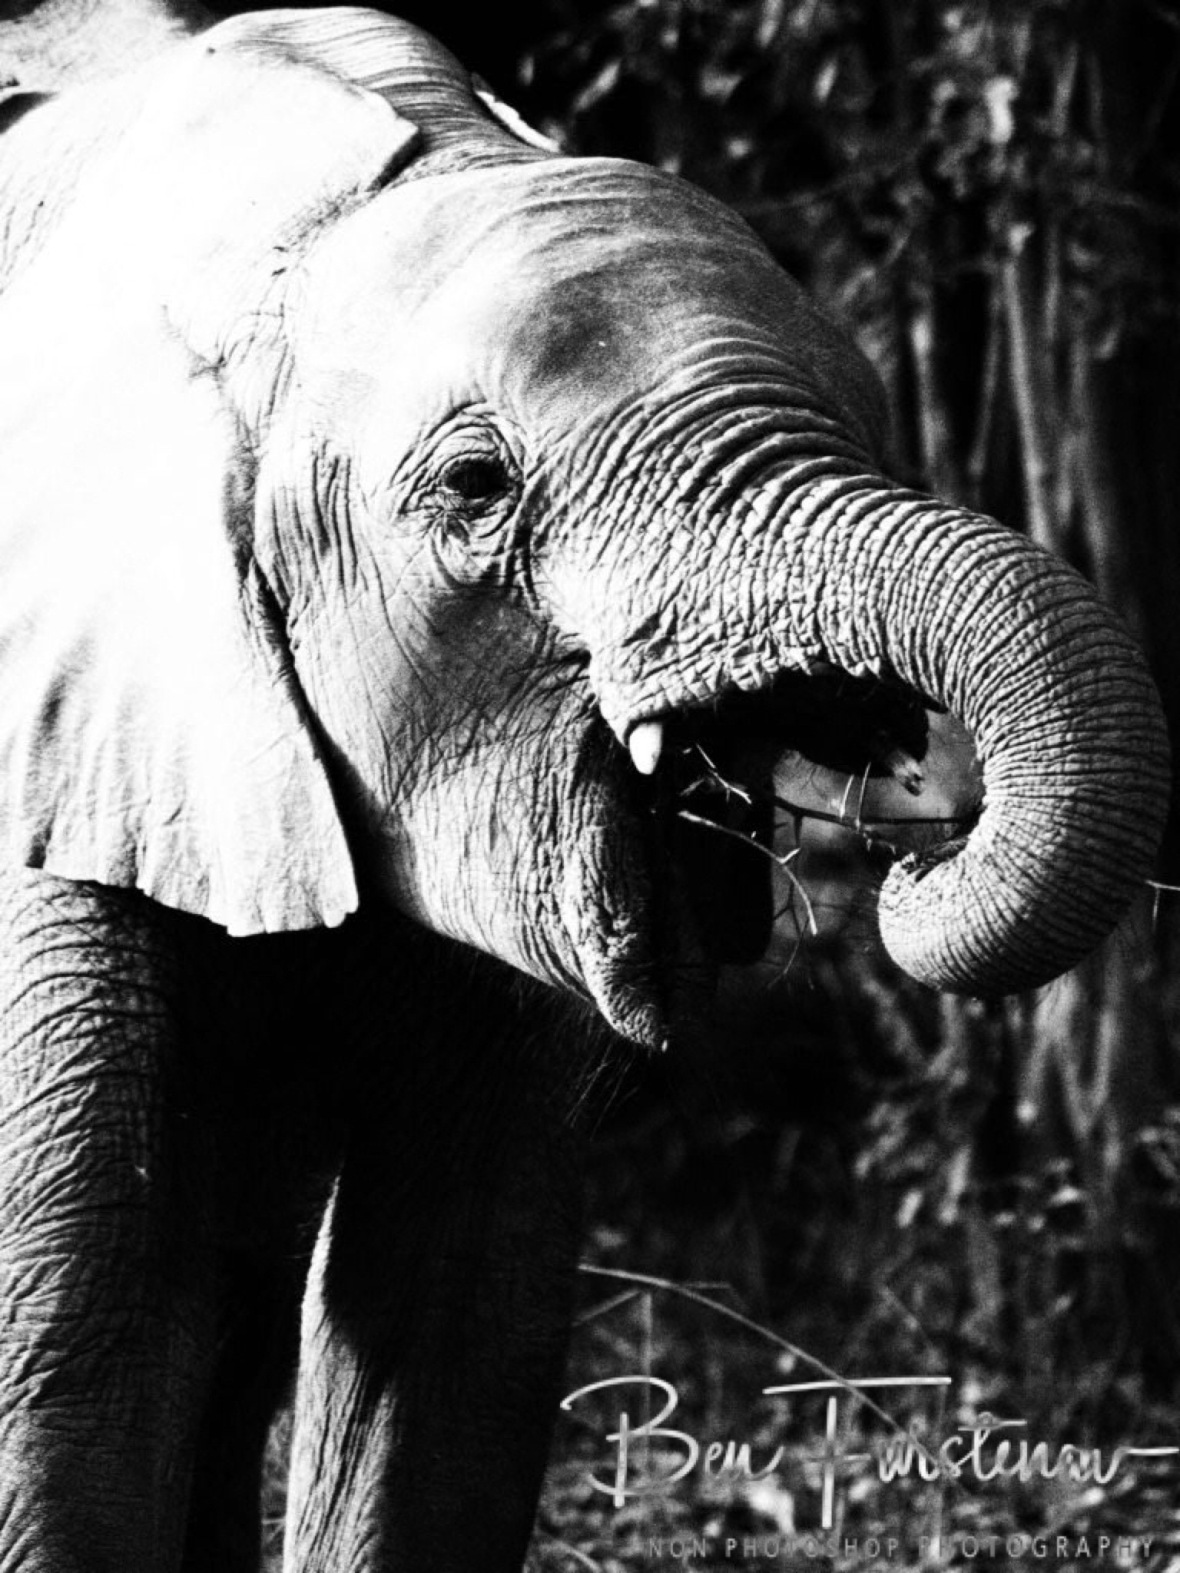 Trunk action by elephants, South Luangwa National Park, Zambia